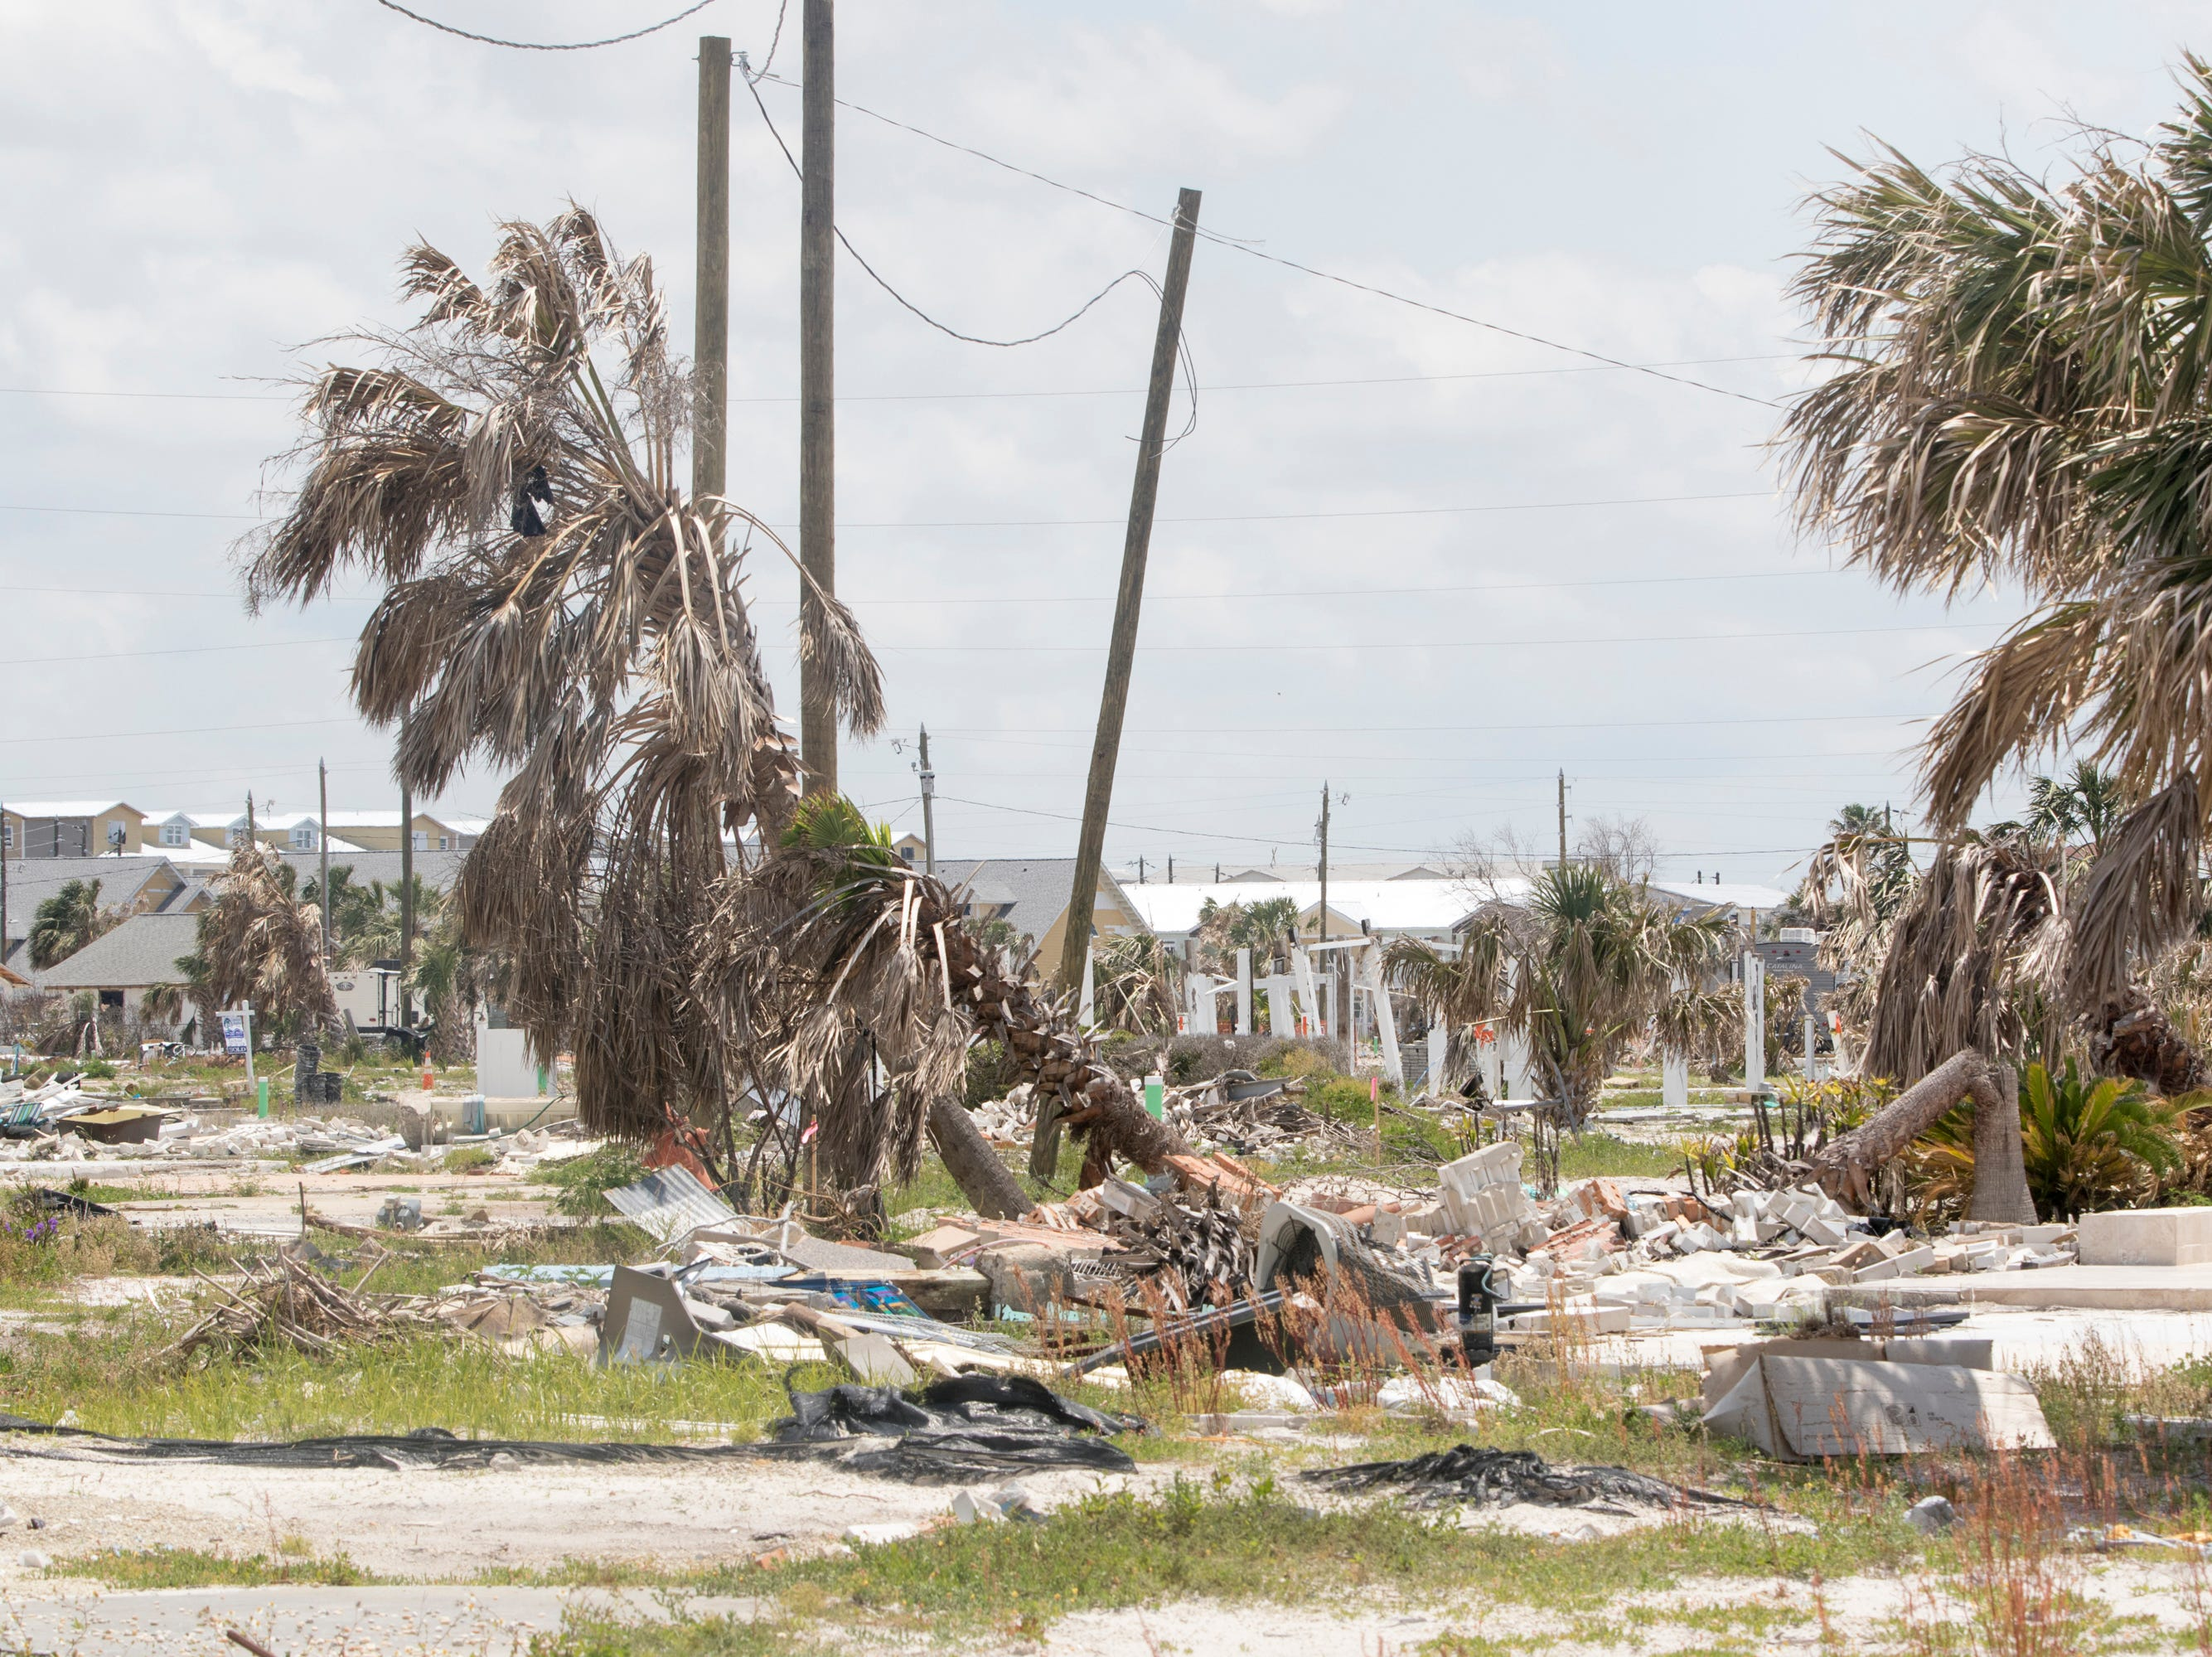 Structures still show the devastating effects of Hurricane Michael in Mexico Beach, Florida on Wednesday, May 8, 2019.  Michael made landfall as a Category 5 hurricane between Mexico Beach and Tyndall Air Force Base on October 10, 2018.